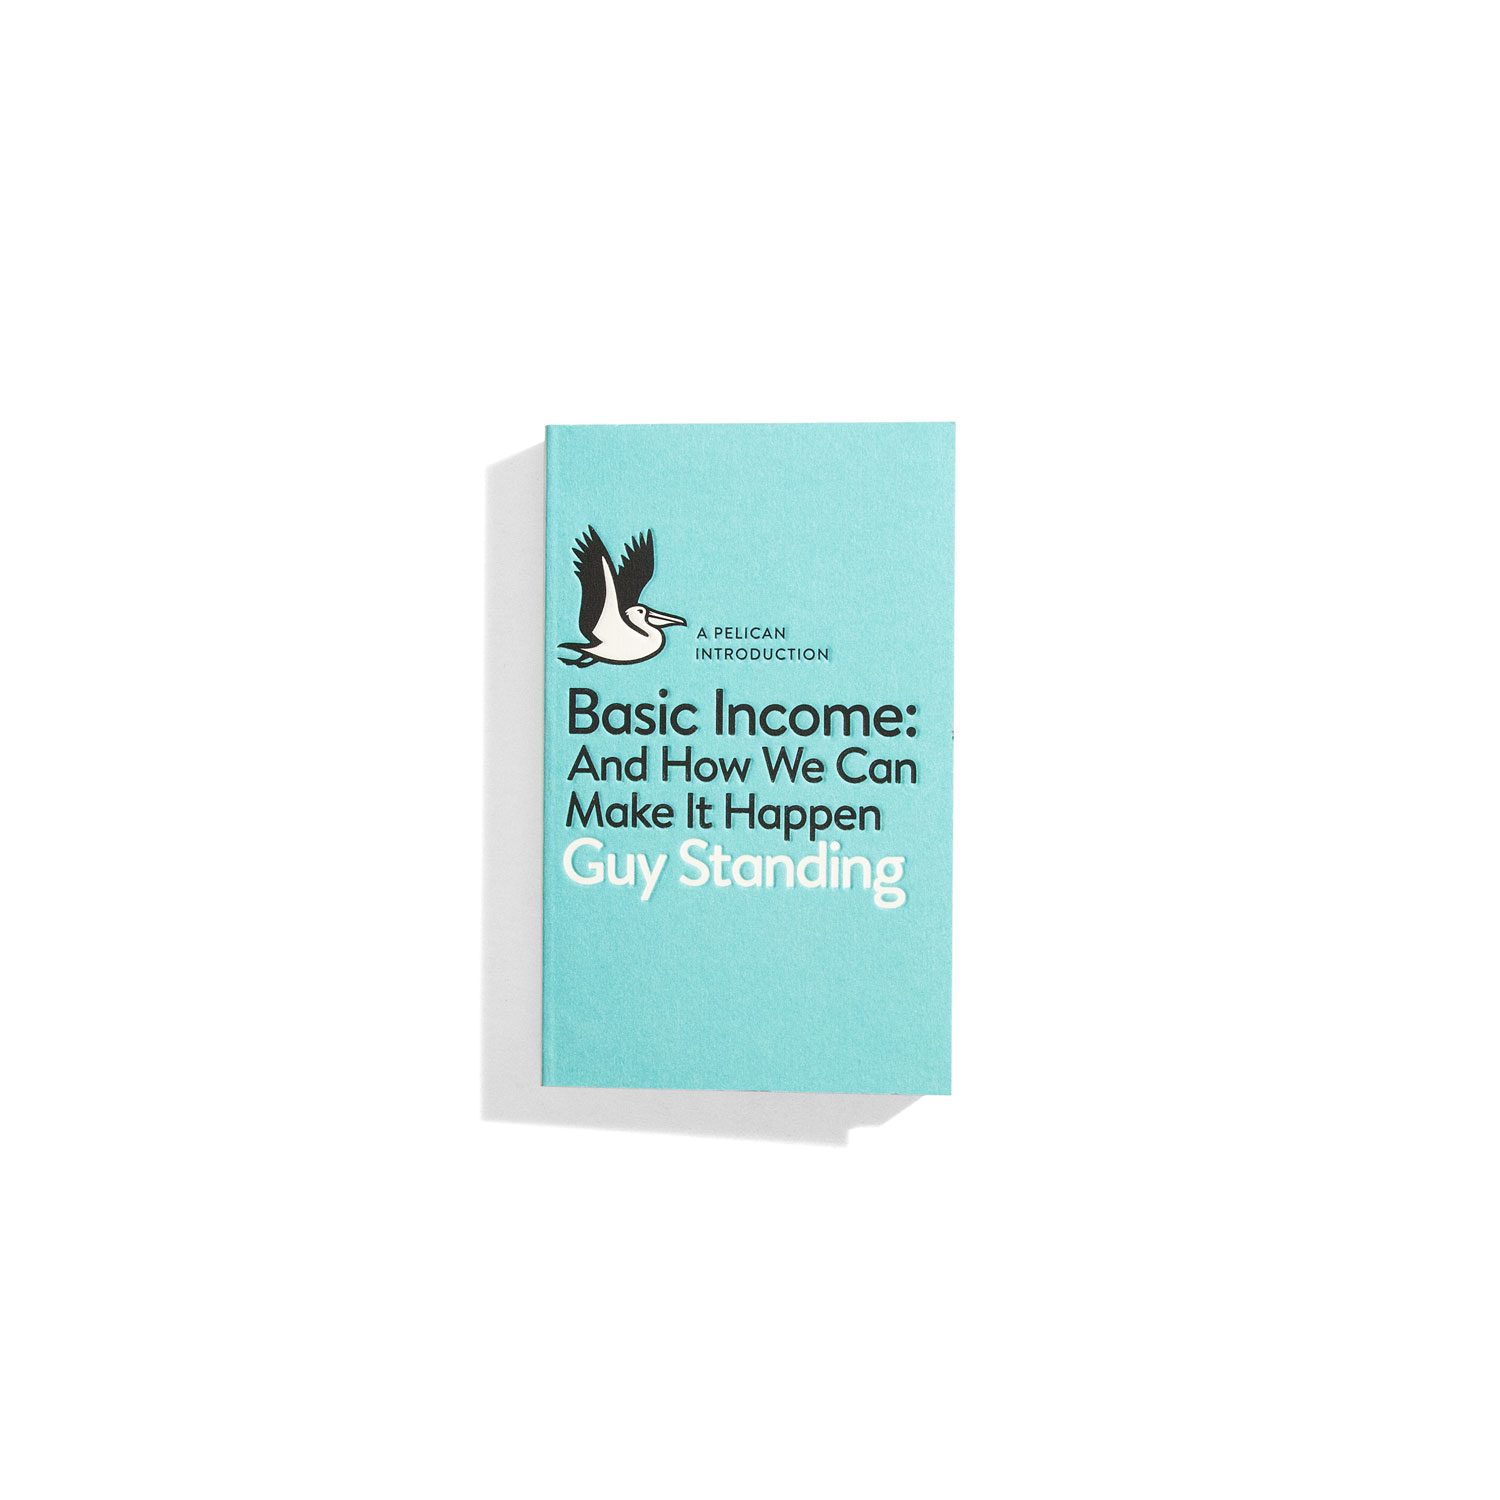 Basic Income: And How We Can Make It Happen - Guy Standing